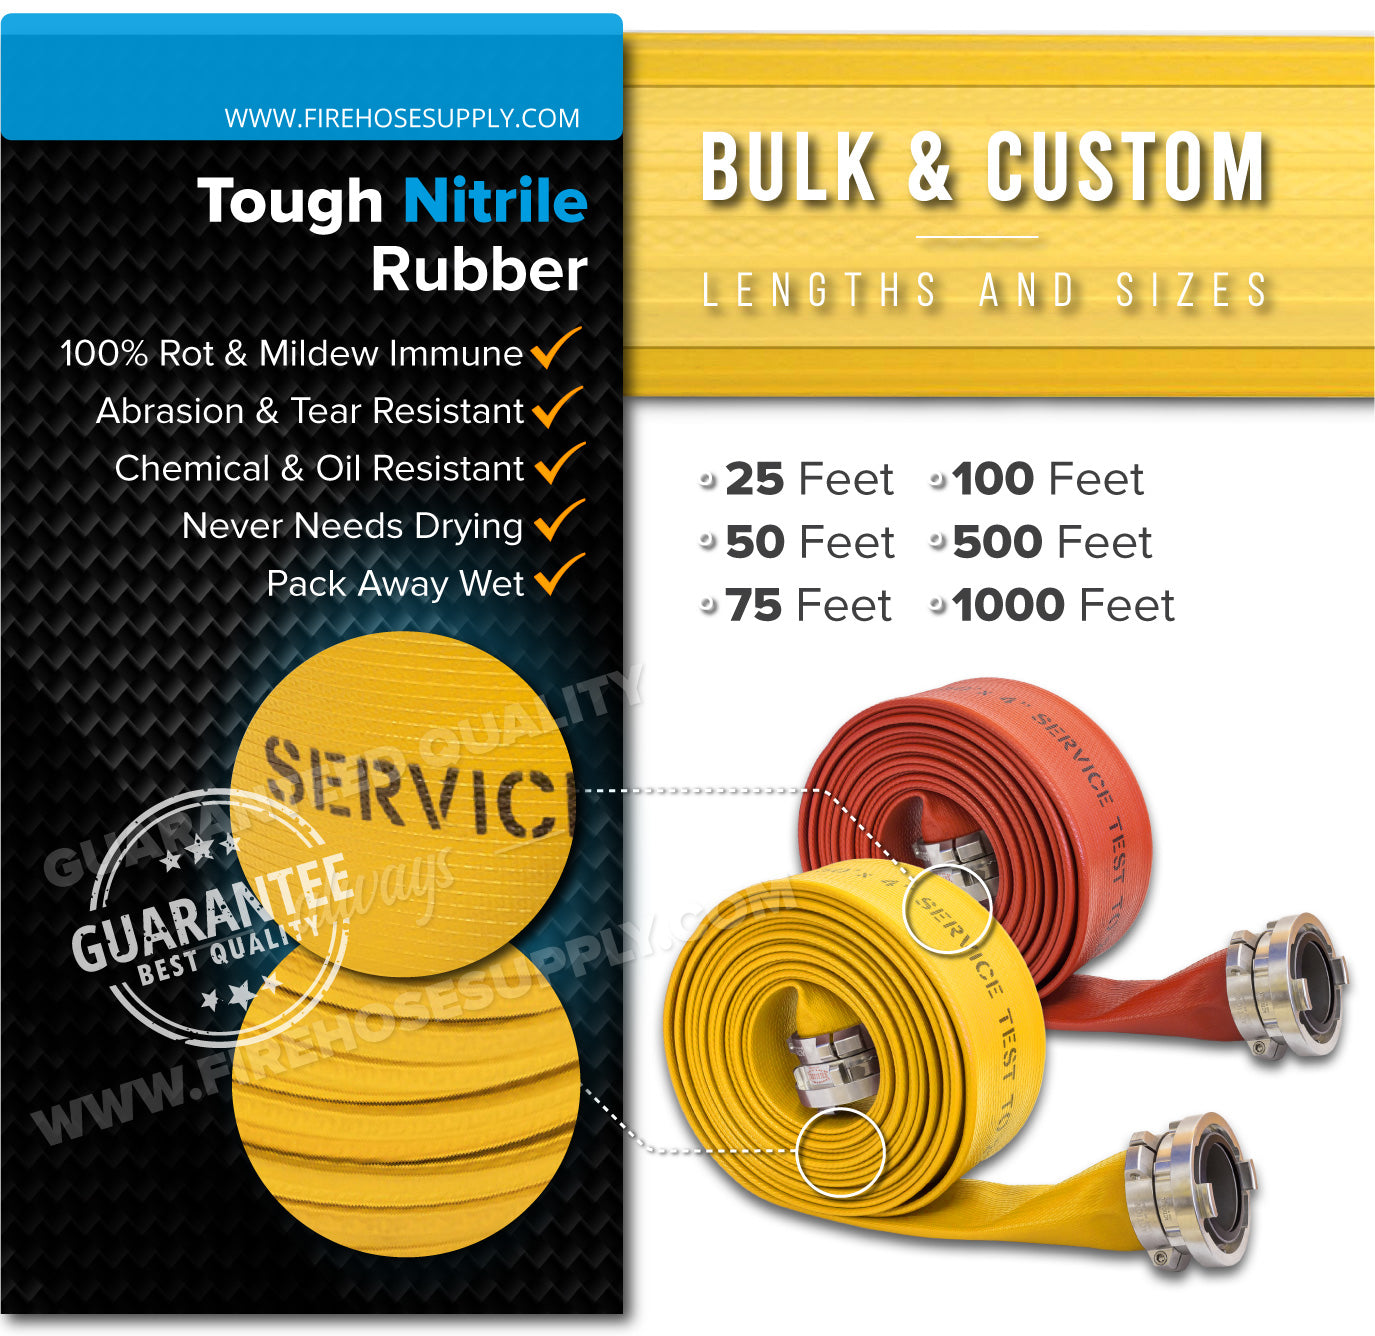 5 Inch Fire Hose Rubber Durable Nitrile Material